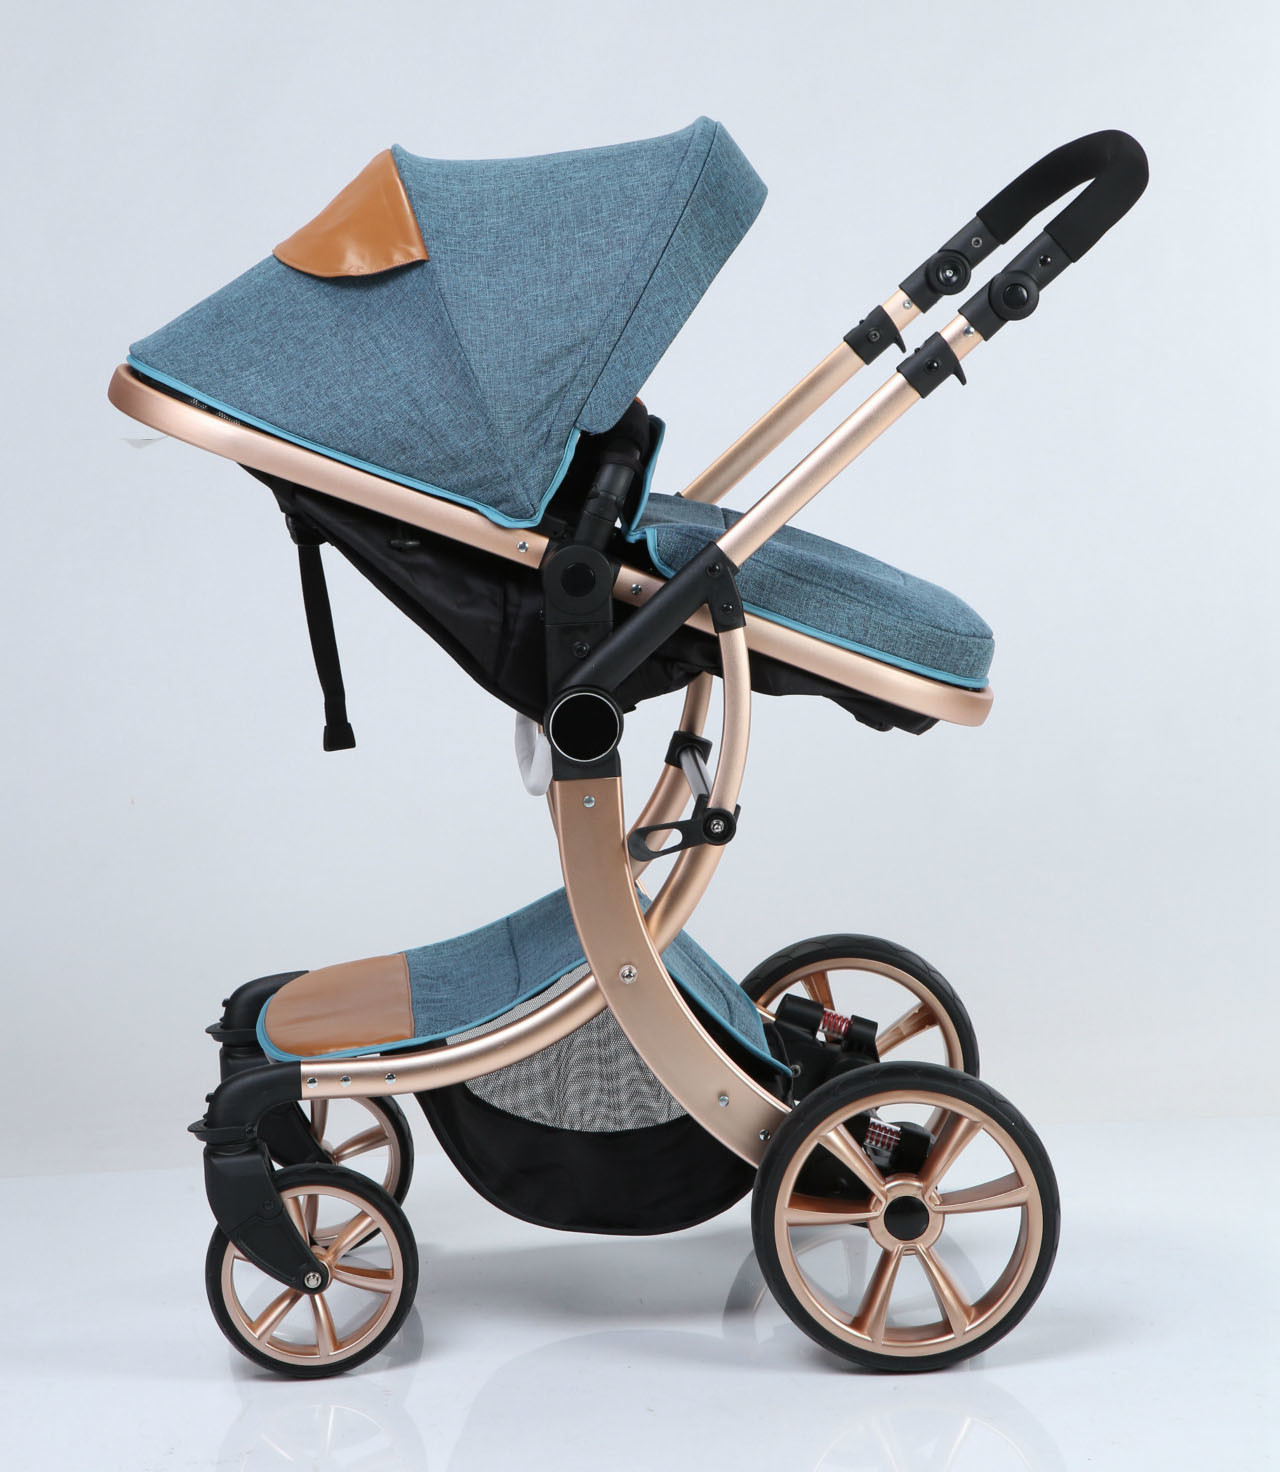 Carriage Type Strollers Hot Item European Fold Baby Carriage With En1888 2012 Approval